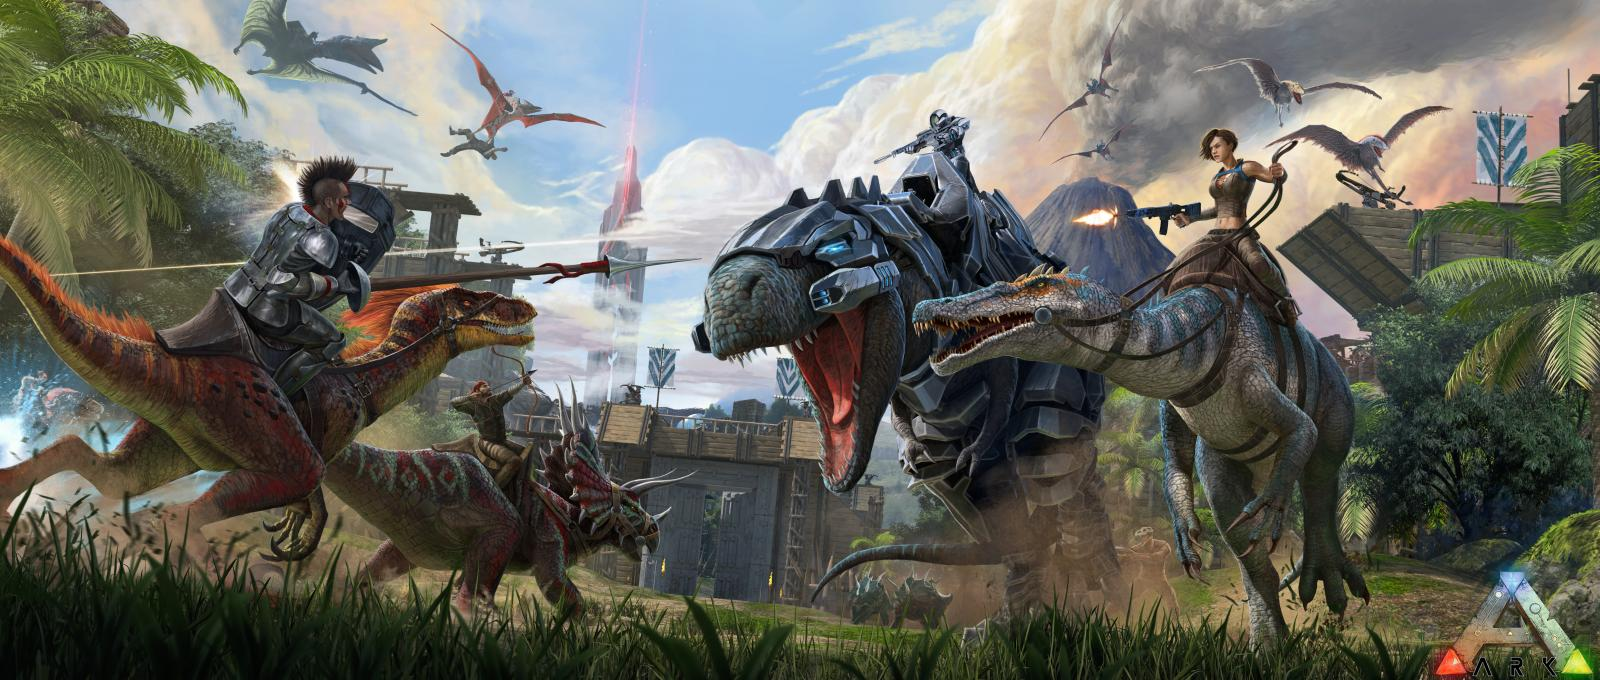 ARK: Survival Evolved, Available Now on Windows 10 with CrossPlay